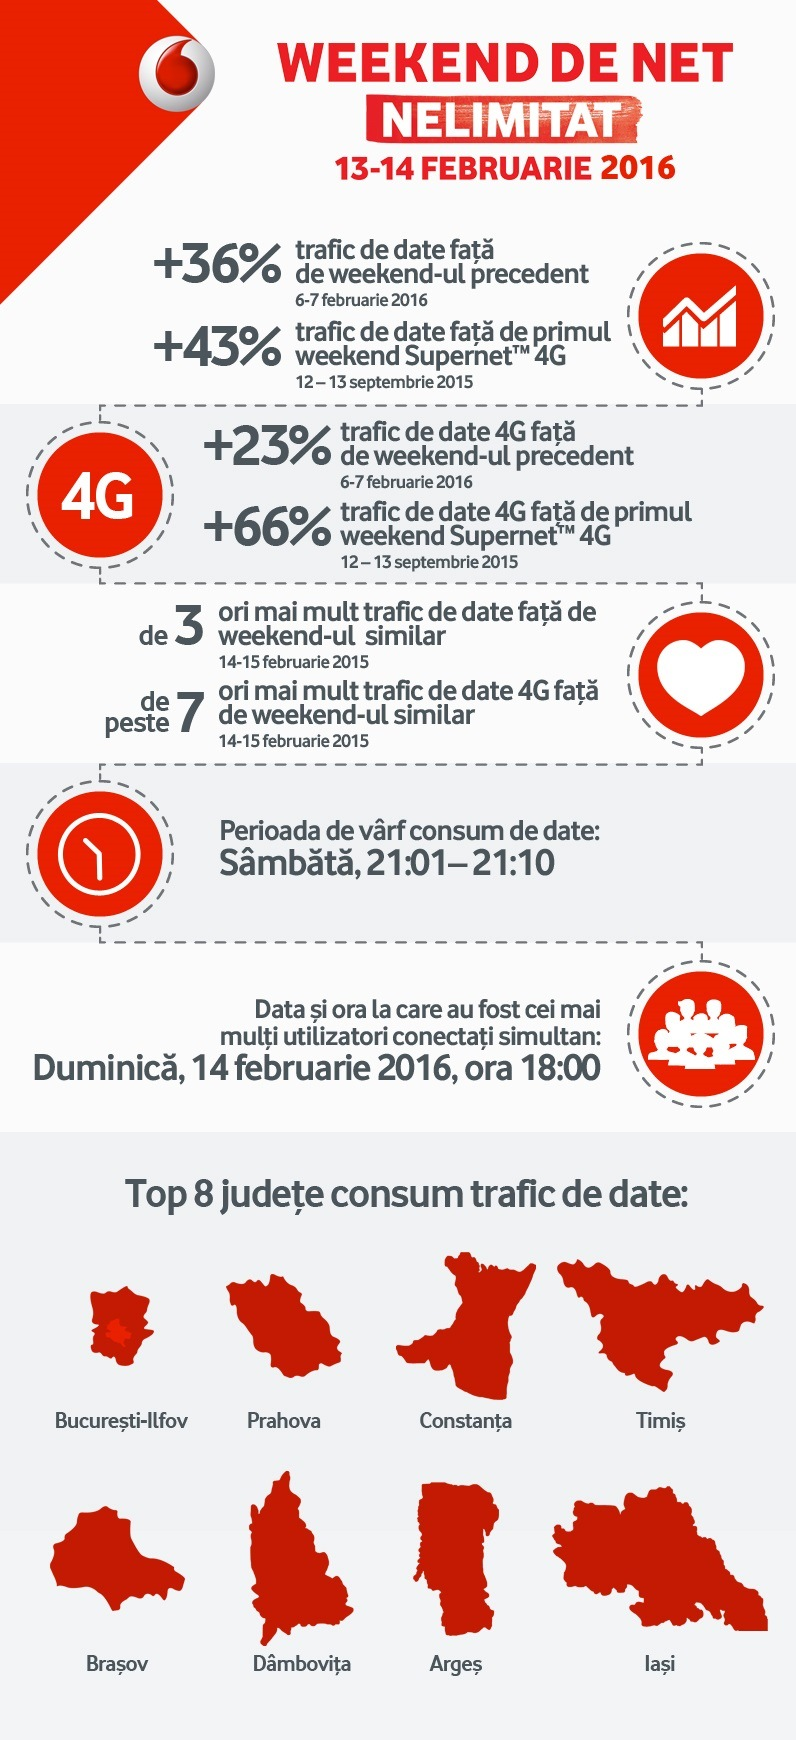 infographic_Vodafone Romania_Weekend internet nelimitat gratuit_13-14 februarie 2016